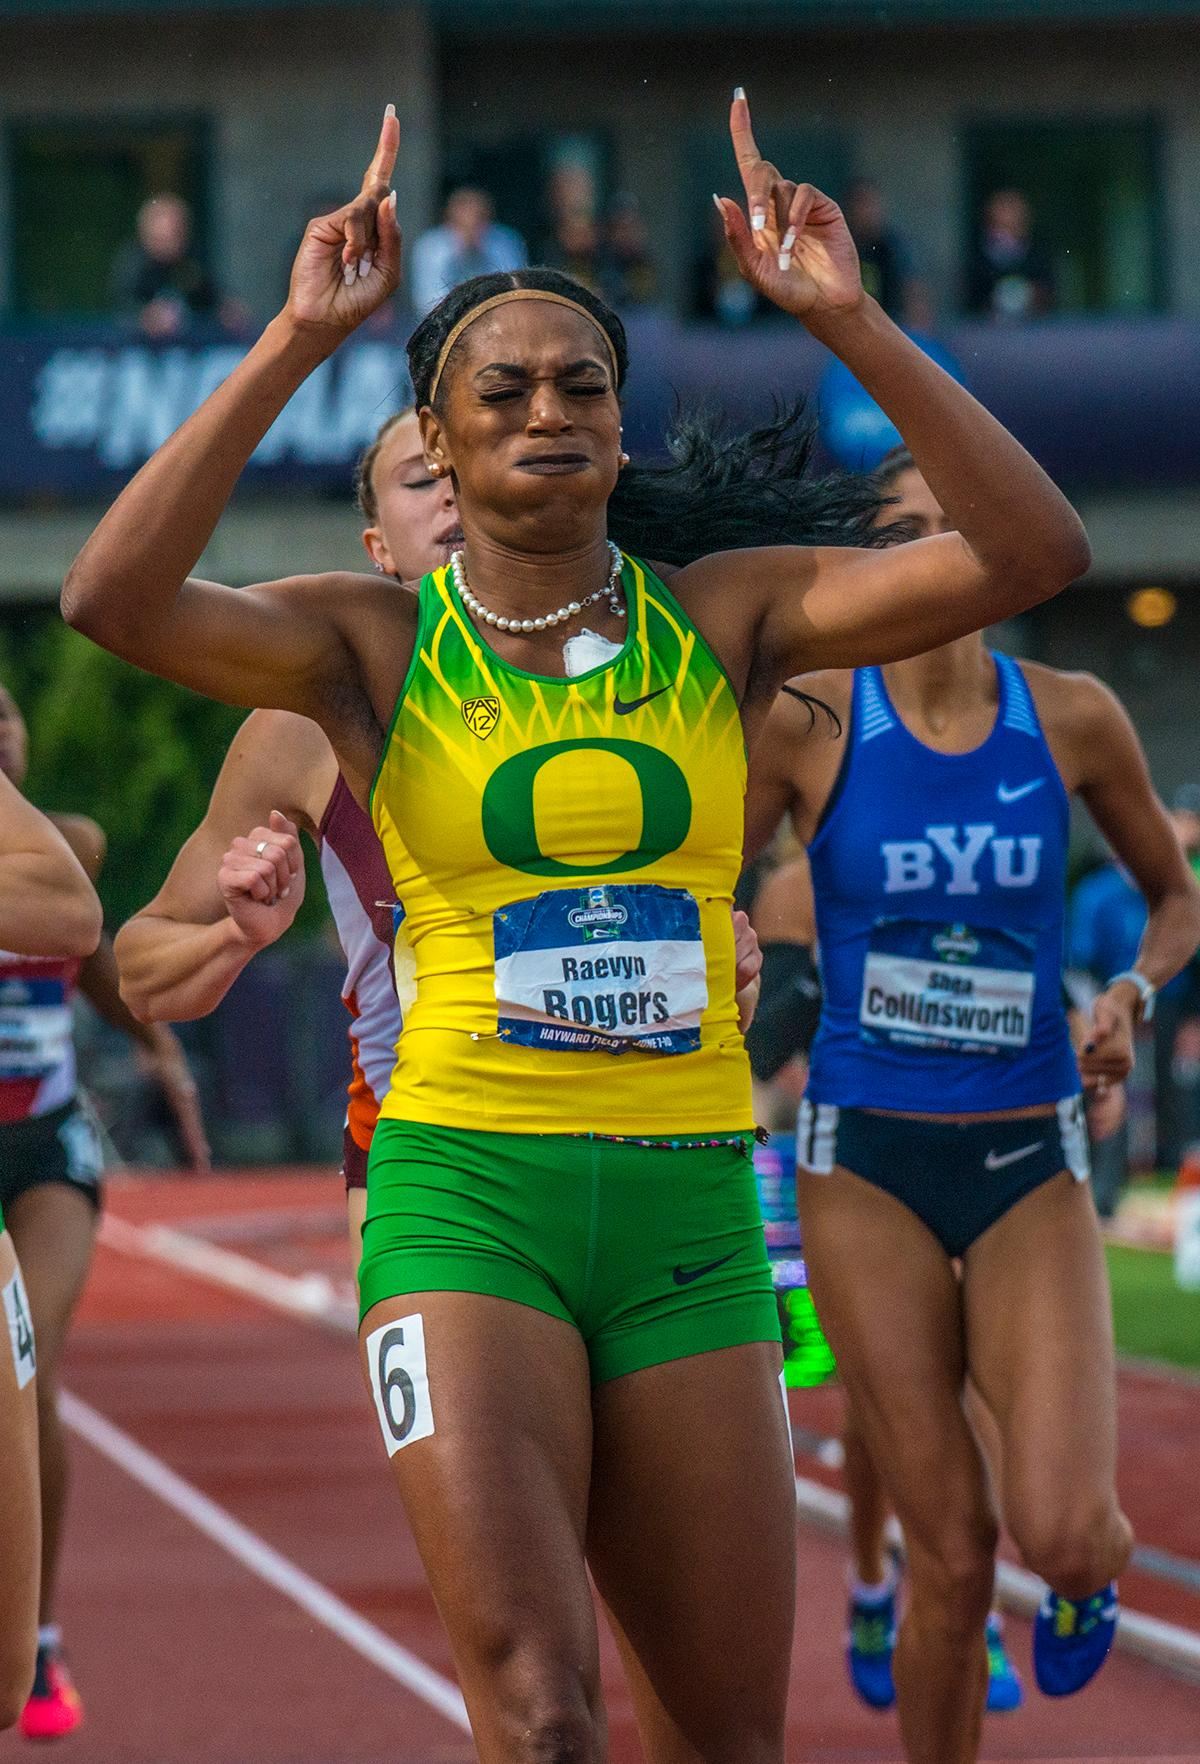 "Raevyn Rogers, University of Oregon, celebrates her victory of the Women's 800m Final. She won the event with a time of 2:00.02 on day four of the NCAA Division I Outdoor Track and Field Championship at Hayward Field. The University of Oregon Women's Track team set a new collegiate best of 3:23.13 in the 4x400 Relay to clinch the overall win with a cumulative score of 64 points in the NCAA Division I Outdoor Track and Field Championship, as well as becoming the first school to ever win the ""Triple Crown"": the National Cross Country, the Indoor Track and Field, and the Outdoor Track and Field all in the same academic year. Georgia came in second overall with 62.2 points and Southern California took third place with 43 points. Photo by Rhianna Gelhart, Oregon News Lab"